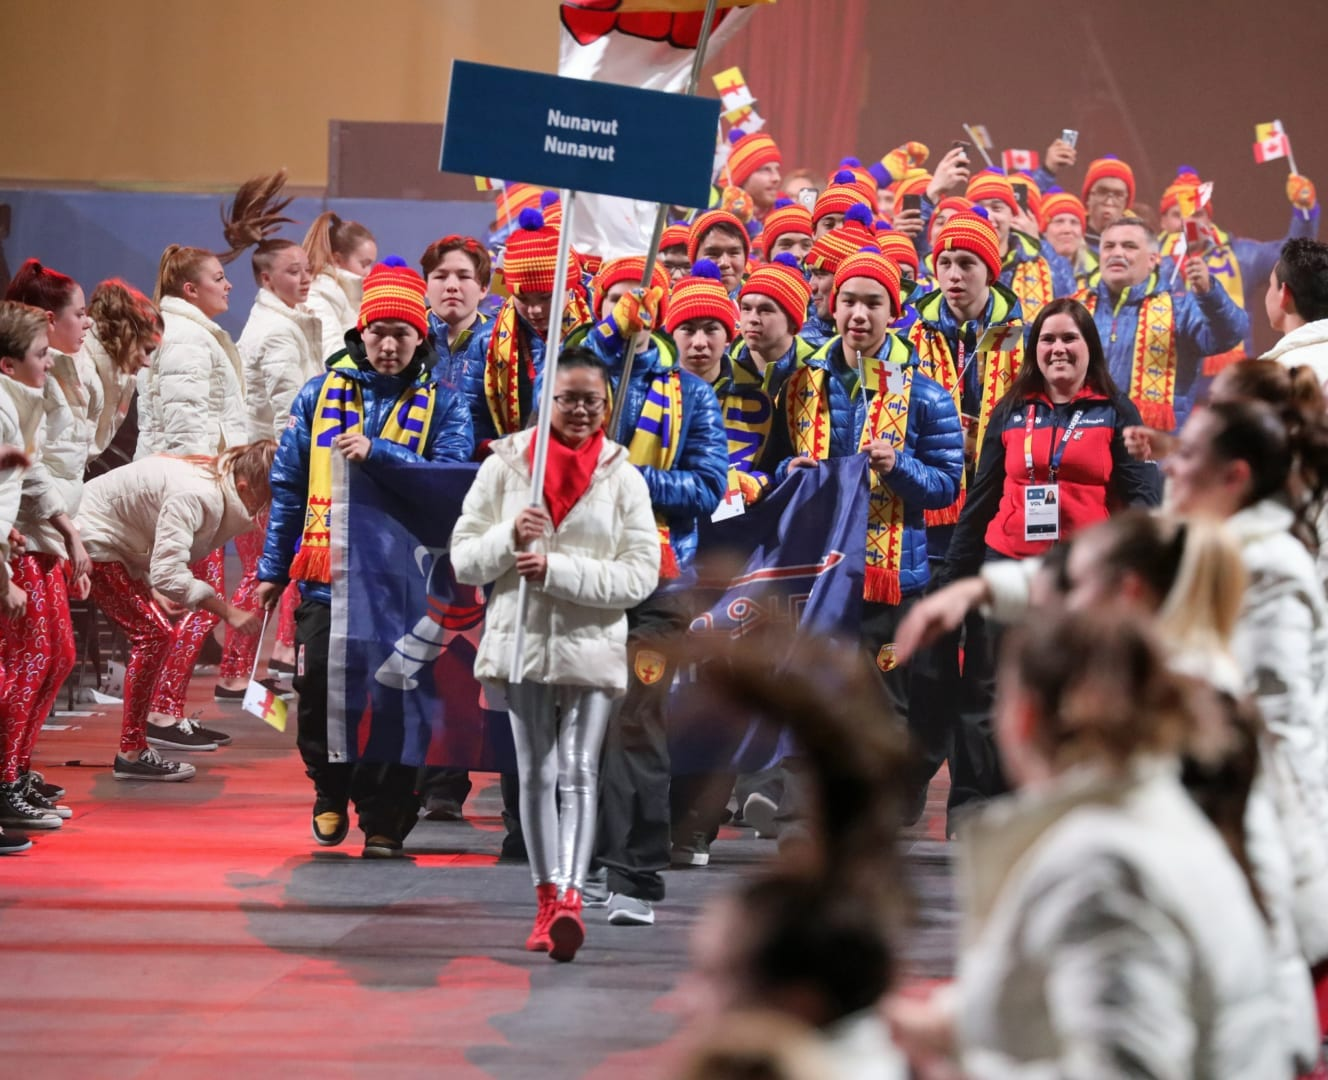 Team Nunavut marches into the opening ceremony of the 2019 Canada Winter Games in Red Deer, Alta., on Feb. 15. Mark Cundict/Canada Winter Games photo